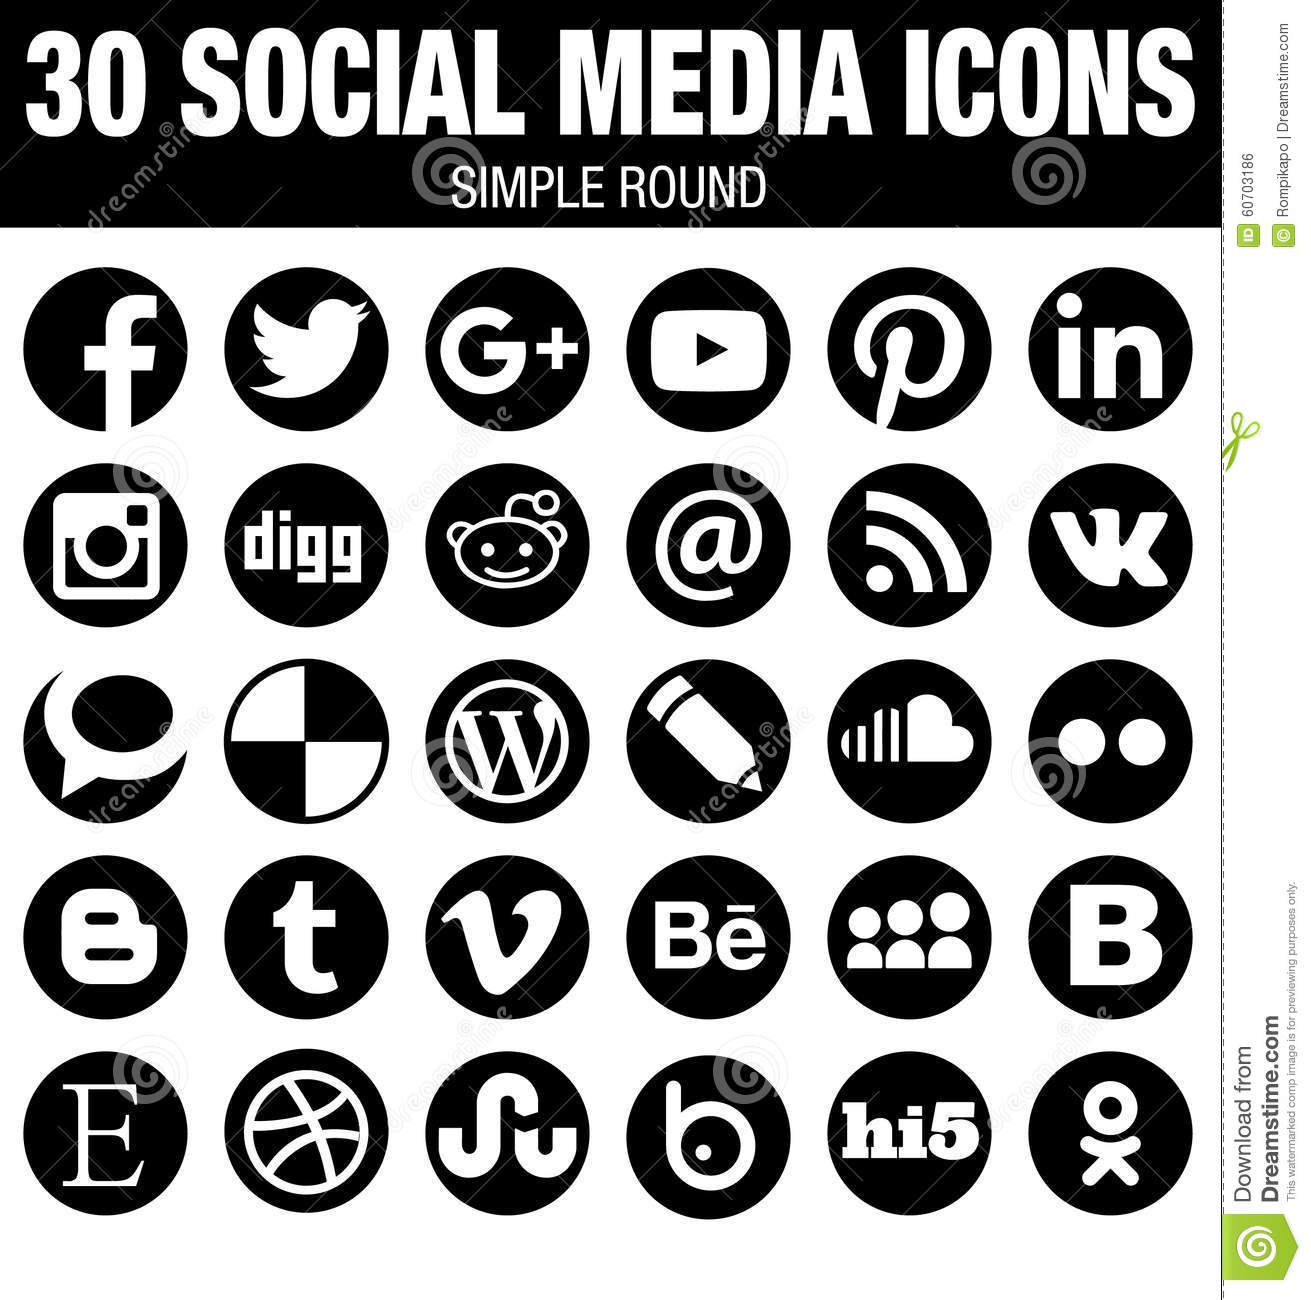 Social media clipart black and white jpg freeuse stock Round Social Media Icons Collection - Black Editorial Photo ... jpg freeuse stock